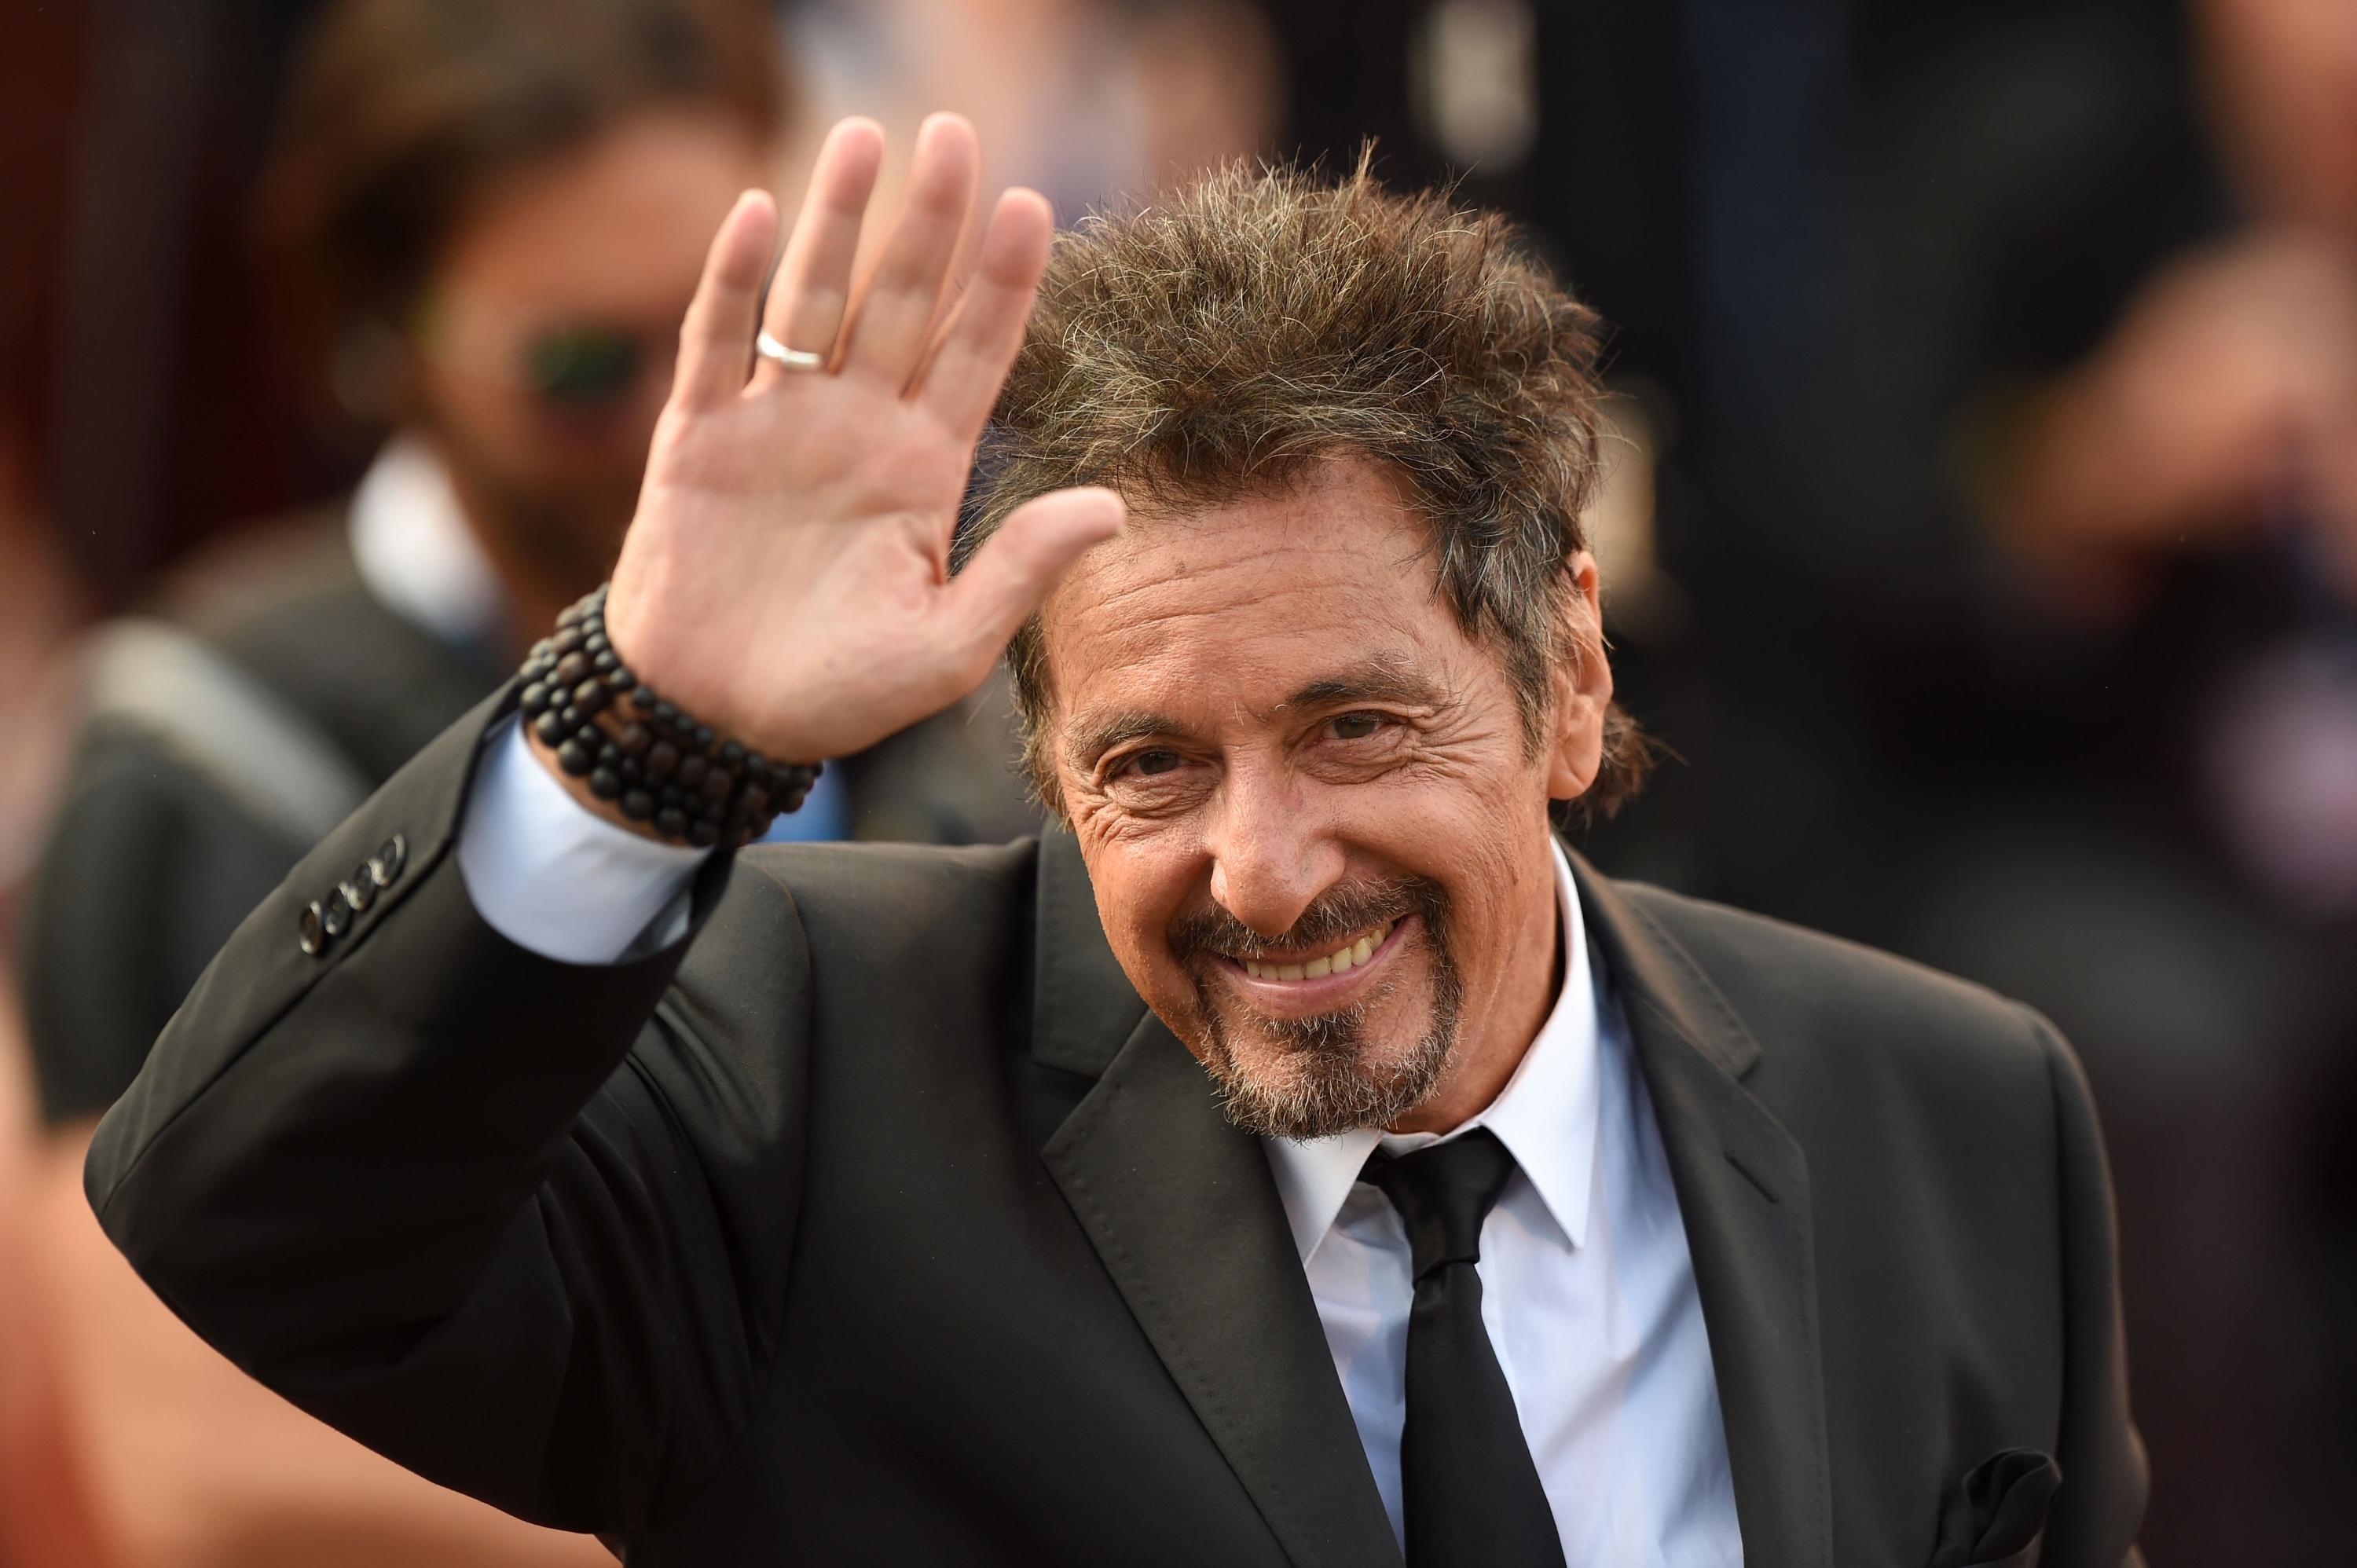 Venice Film Festival: Al Pacino Speaks About Depression